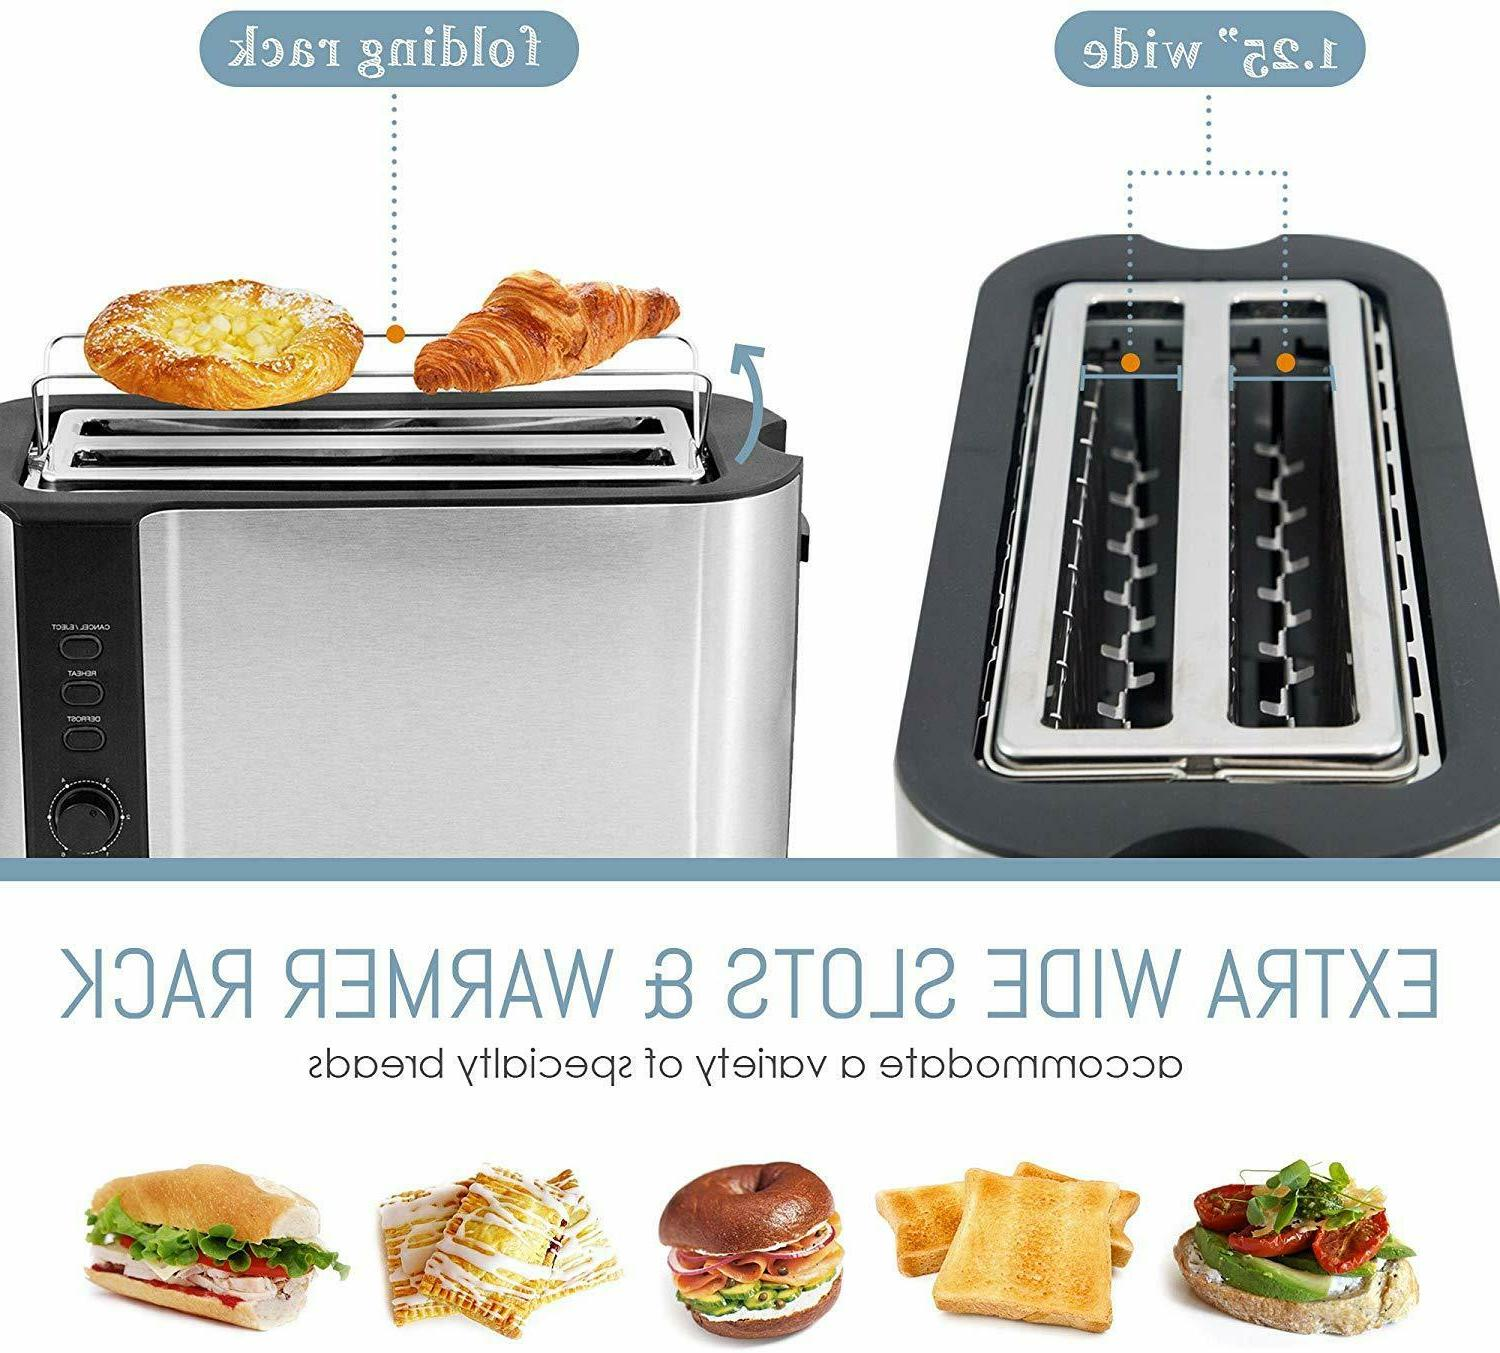 4 Long Slot Toaster With Extra Slot + Warmer